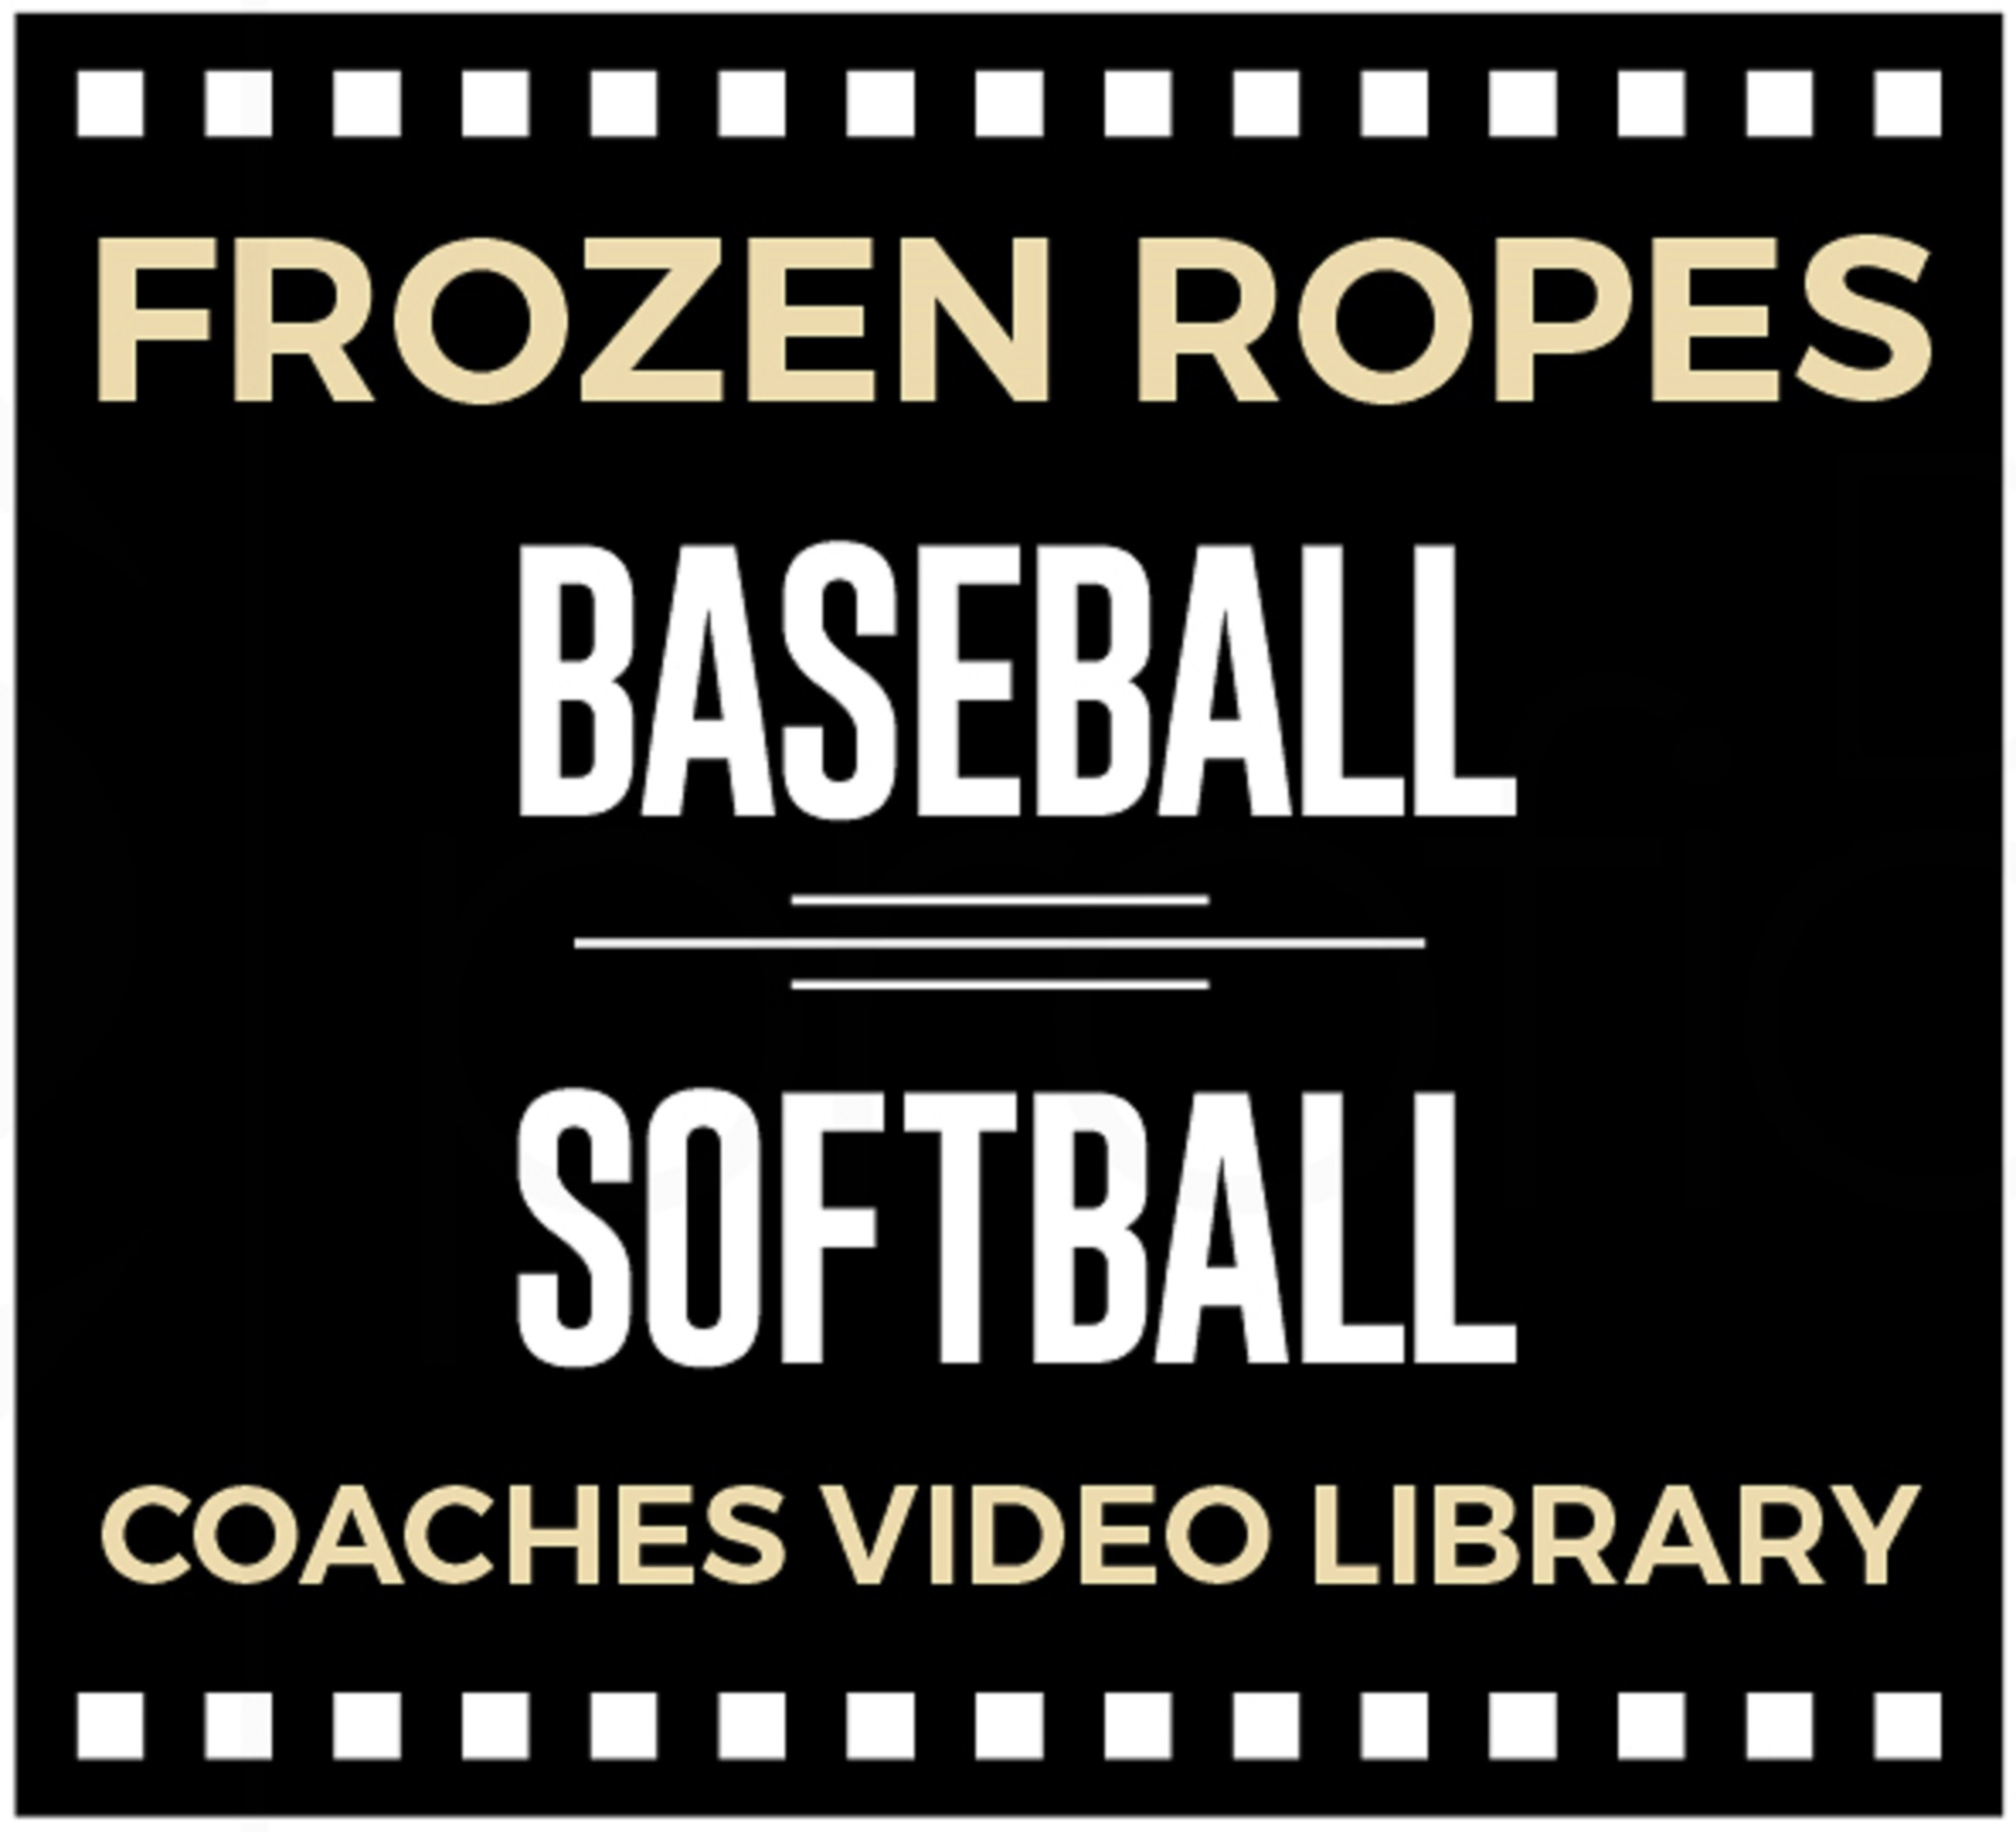 https://www.frozenropes.com/programs/coaches-video-library/